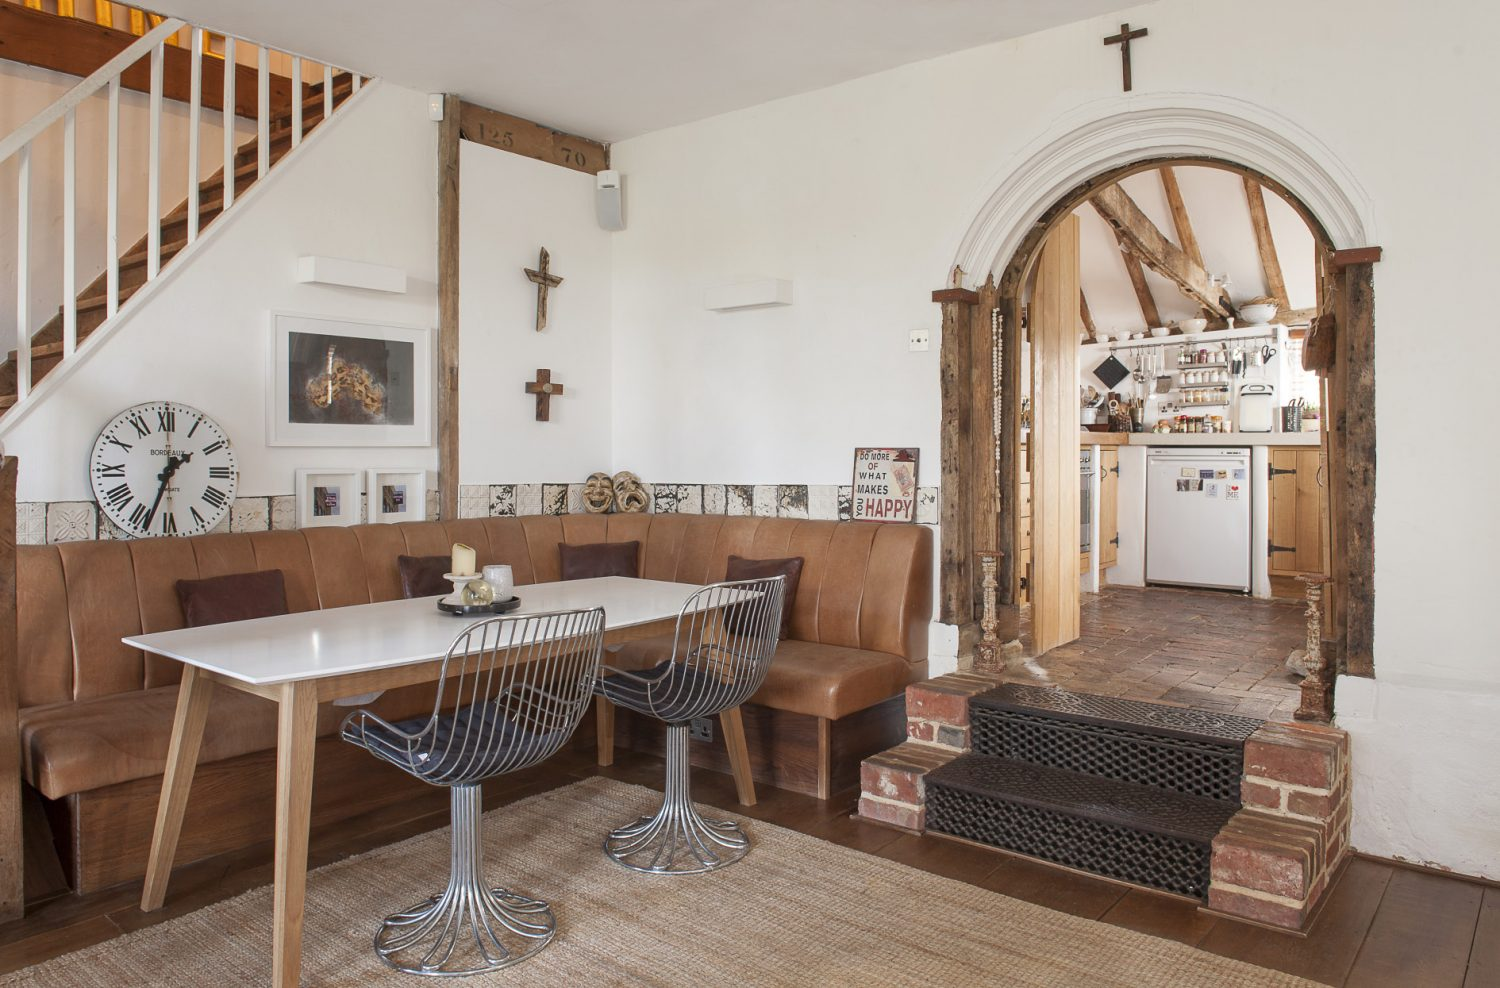 The family/breakfast room divided by a structural beam supported by one of the cast iron pillars that once held up a roof in Tenterden's Victorian railway station